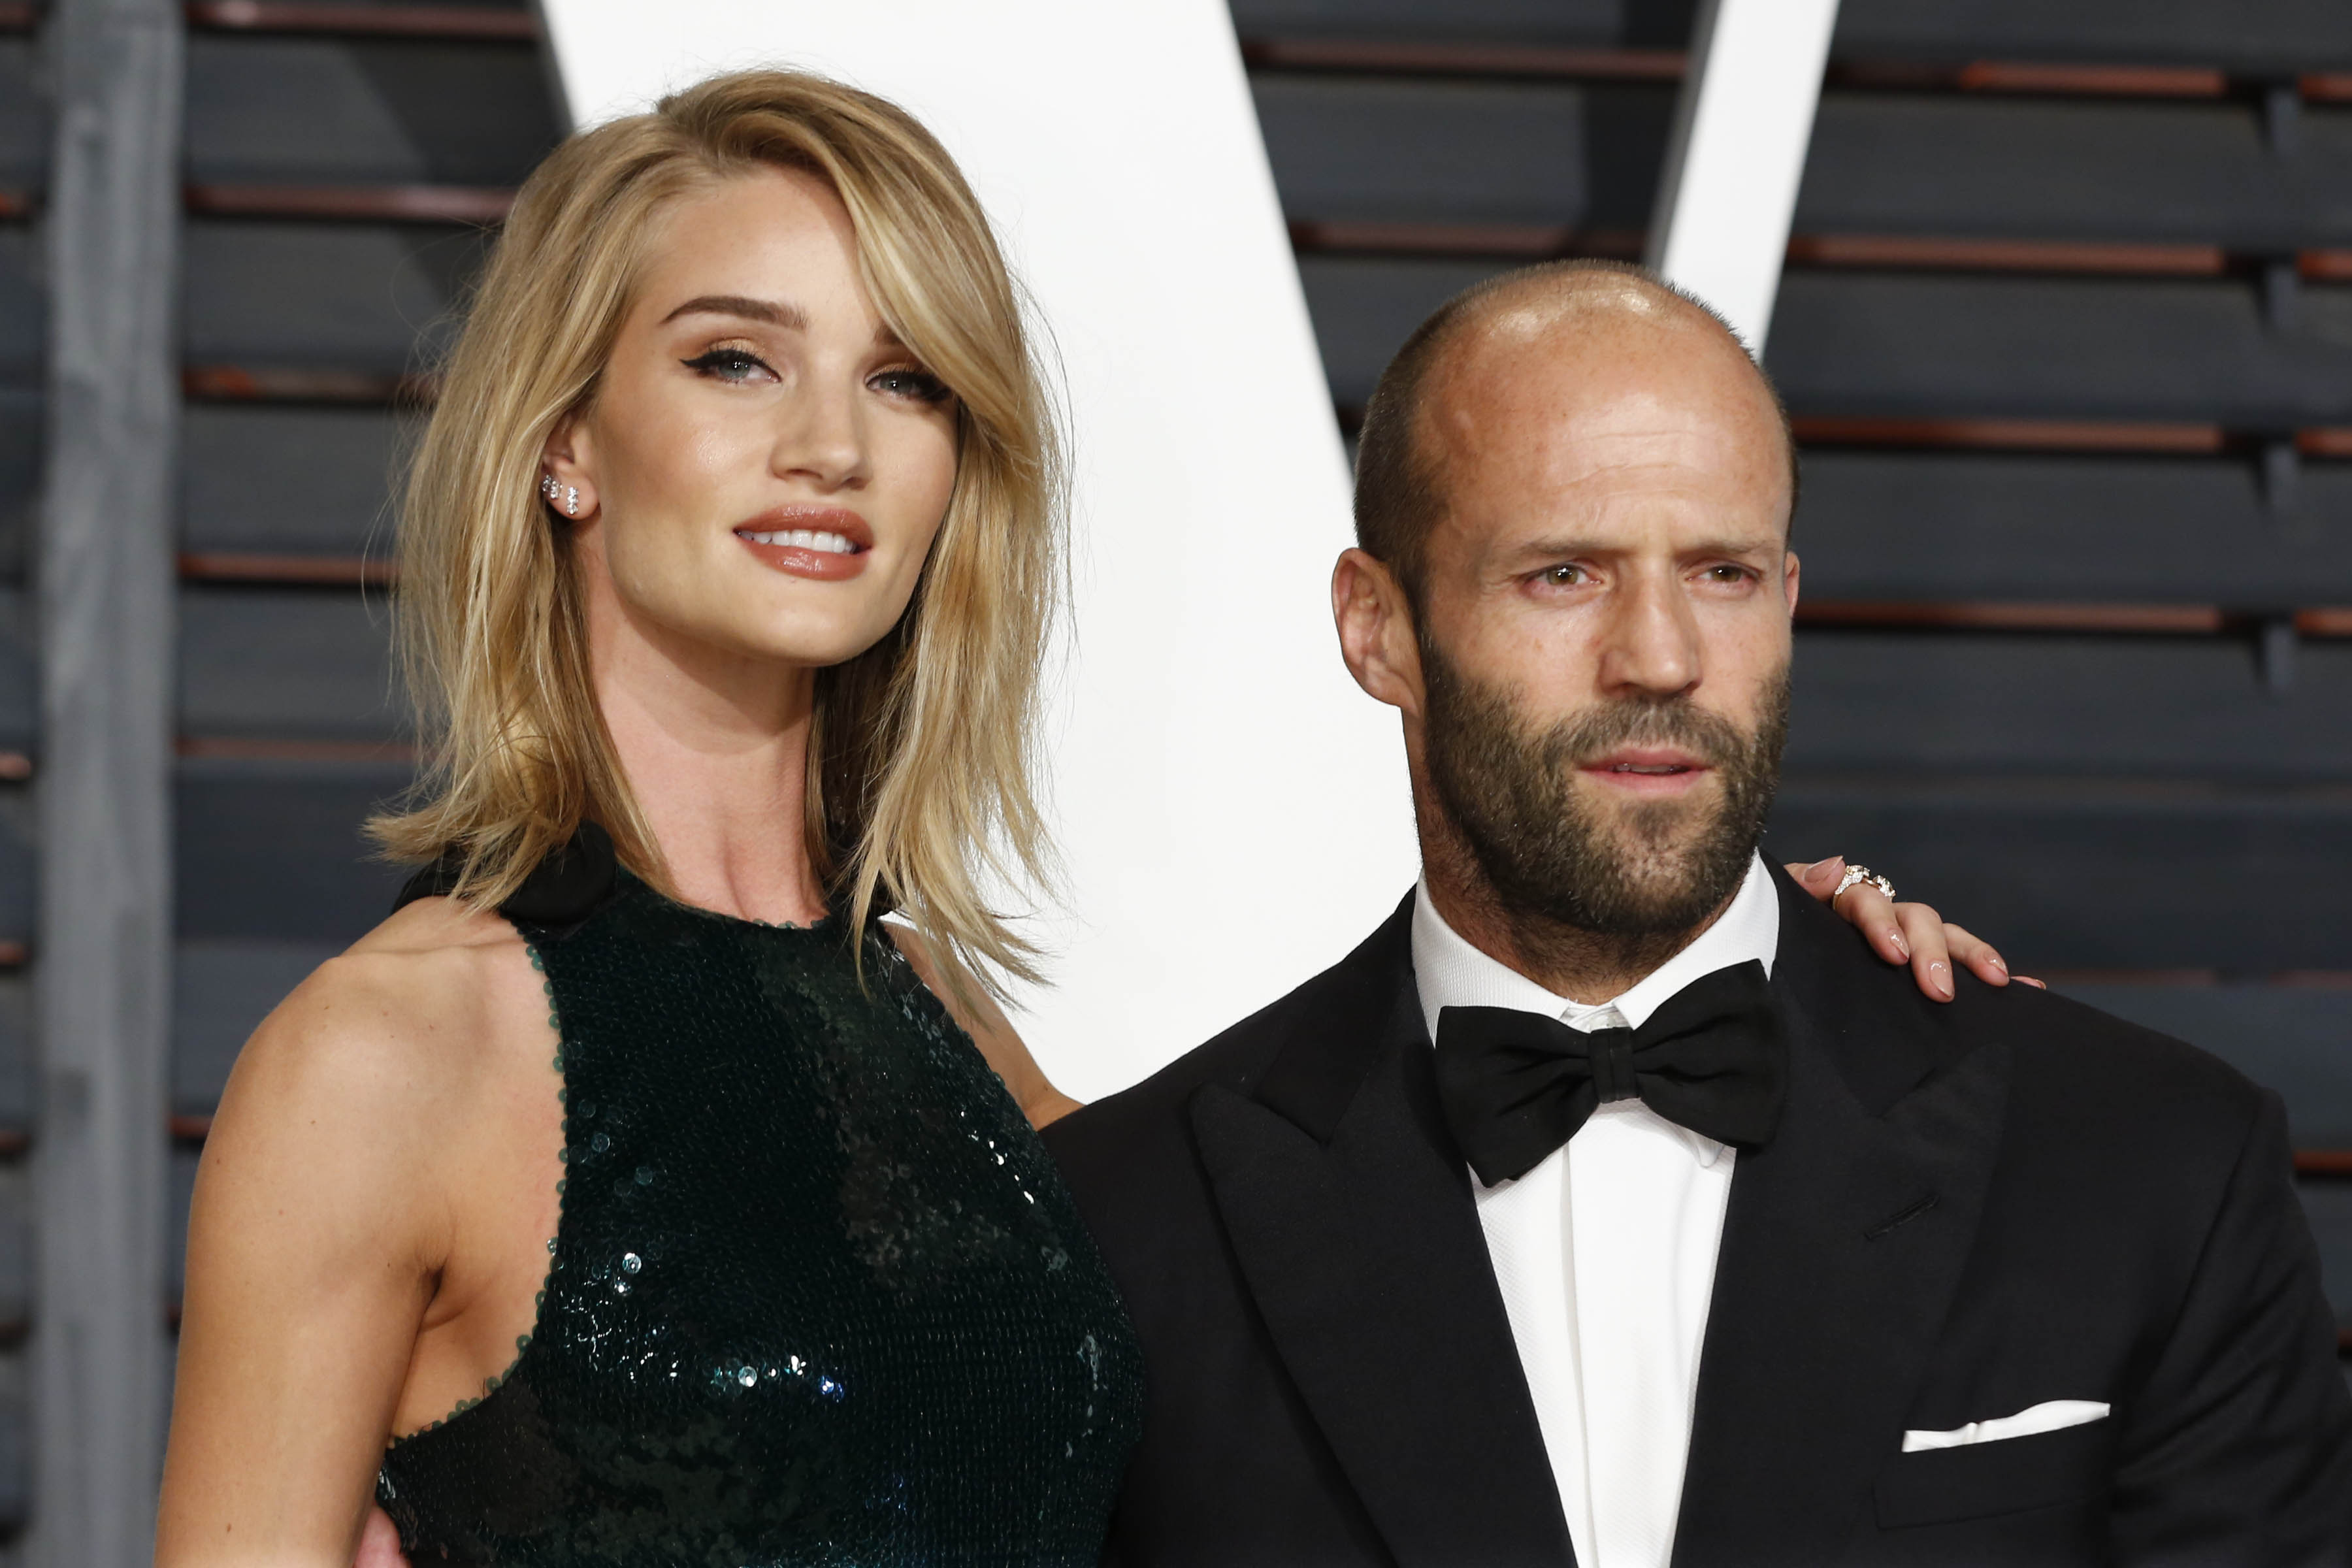 Rosie Huntington Whiteley and Jason Statham relationships with big age difference